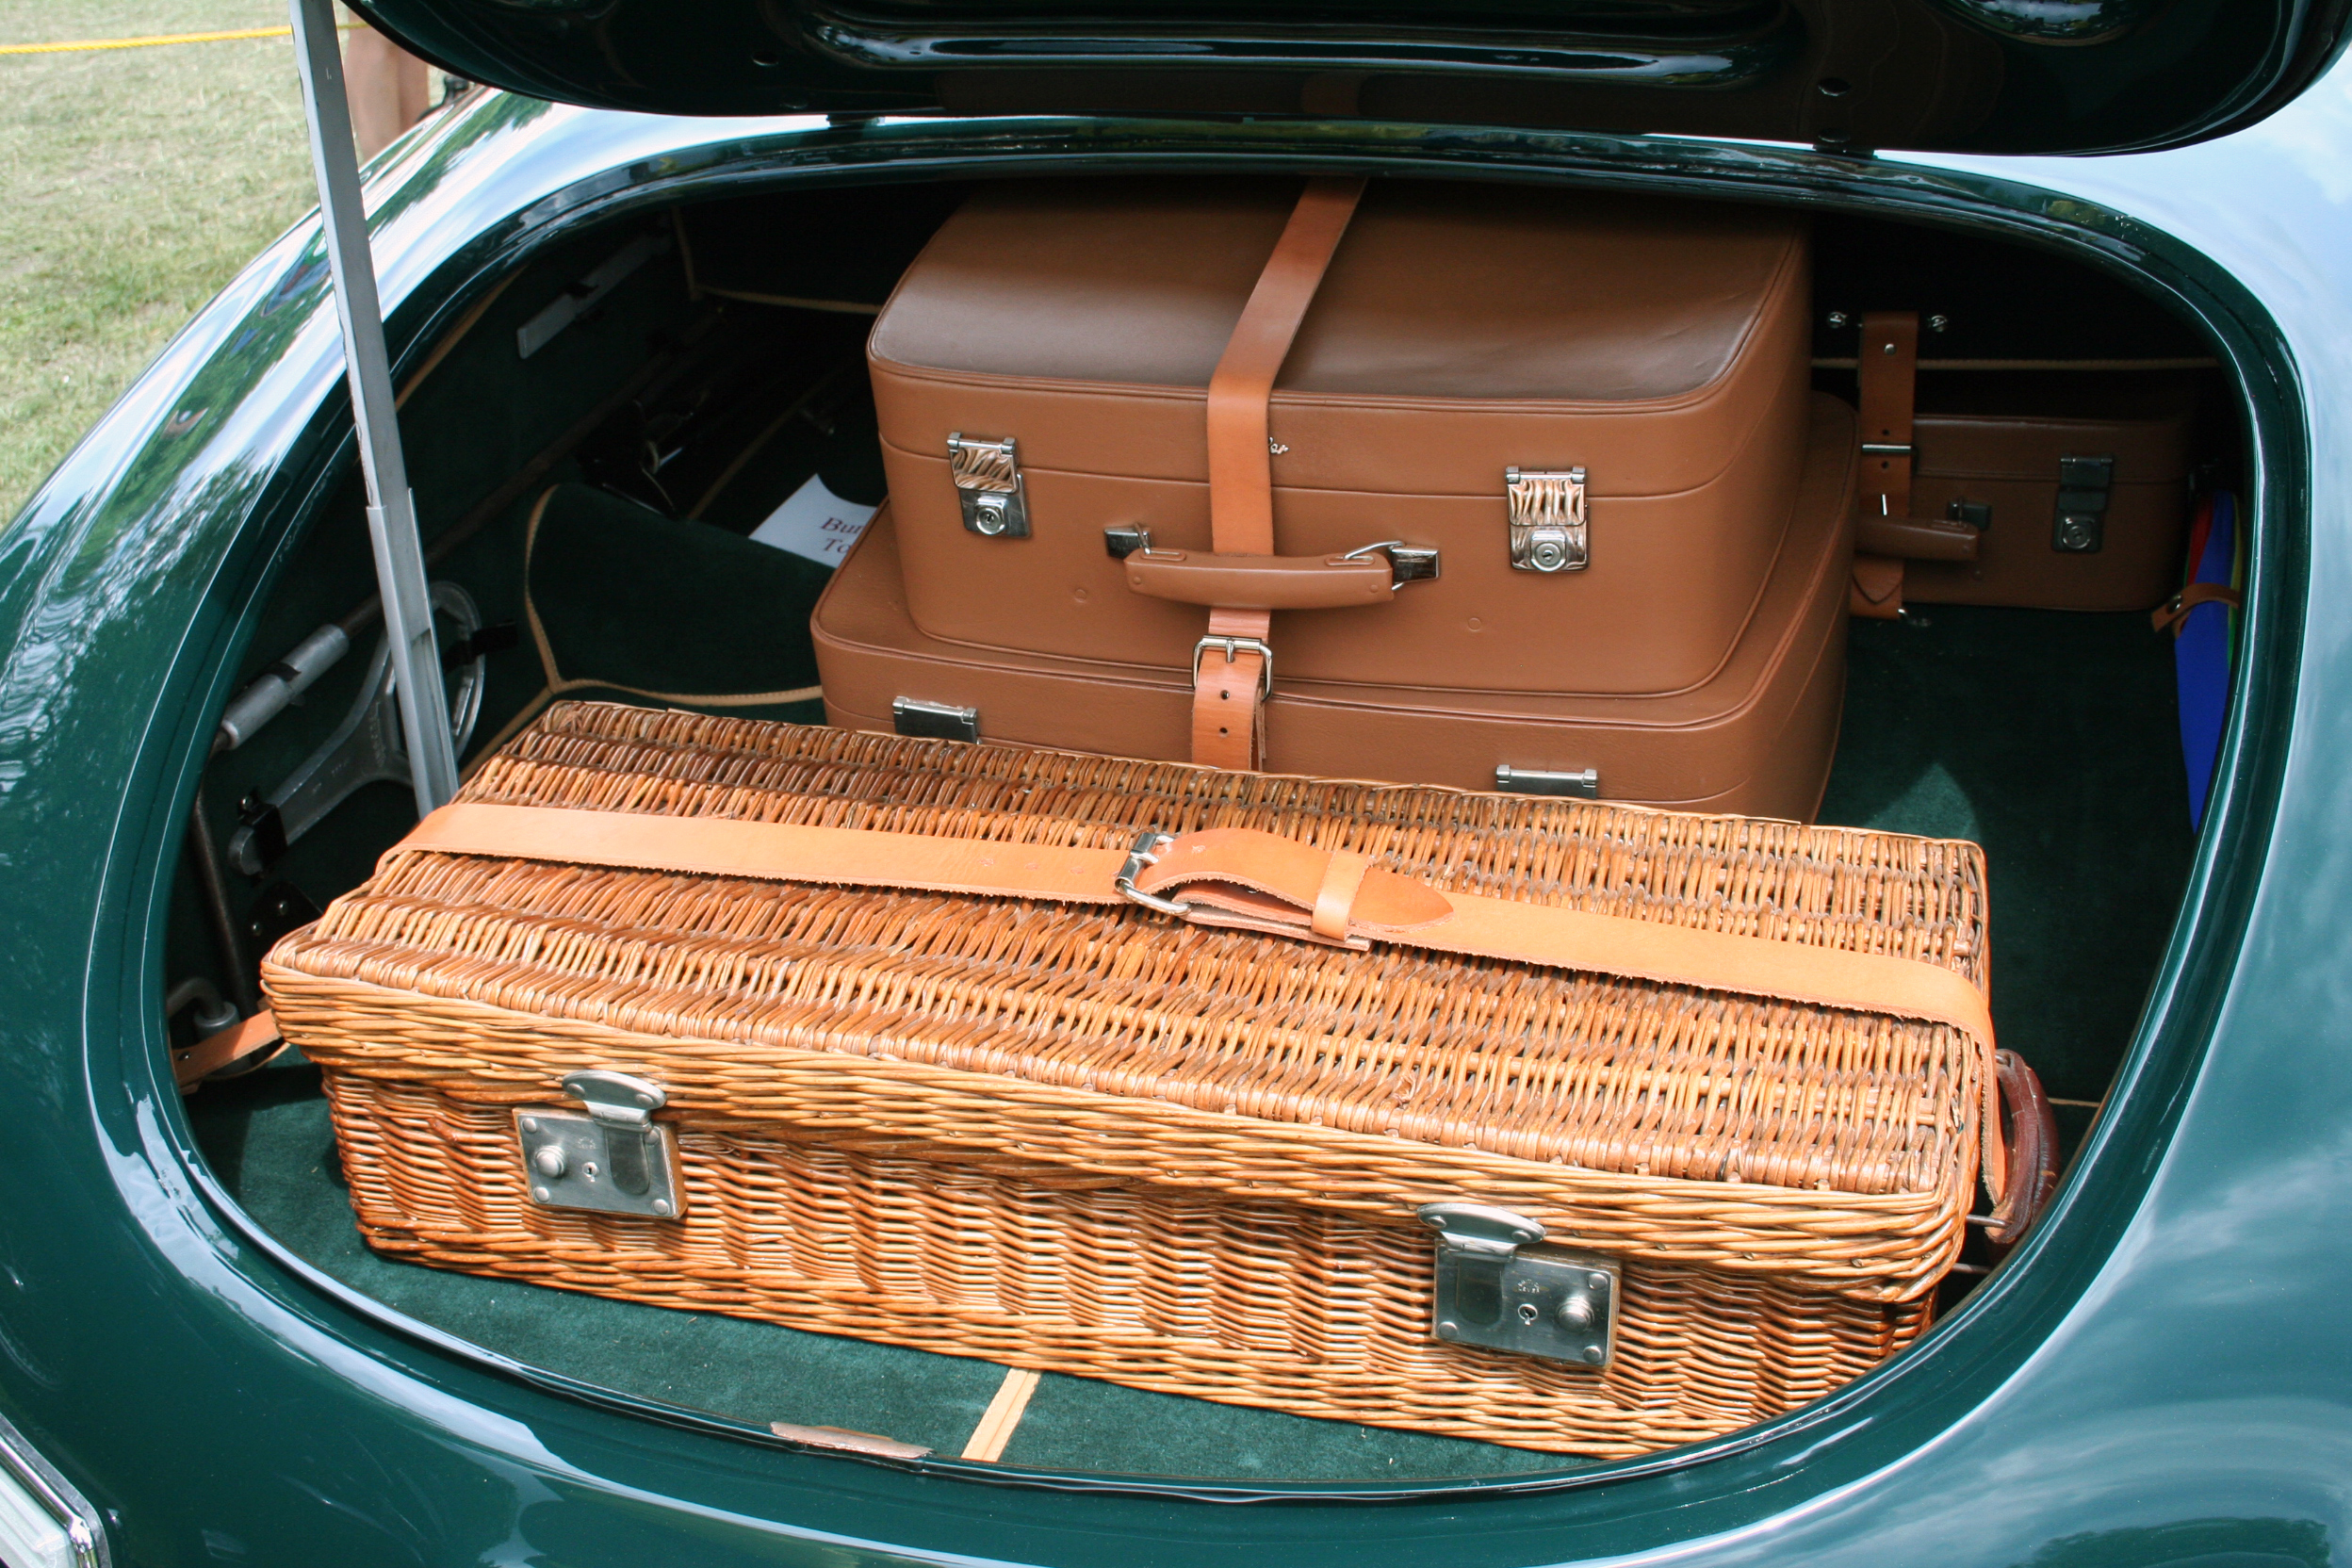 https://upload.wikimedia.org/wikipedia/commons/5/5d/1951_and_53_Graber_Bentley_luggage.jpg